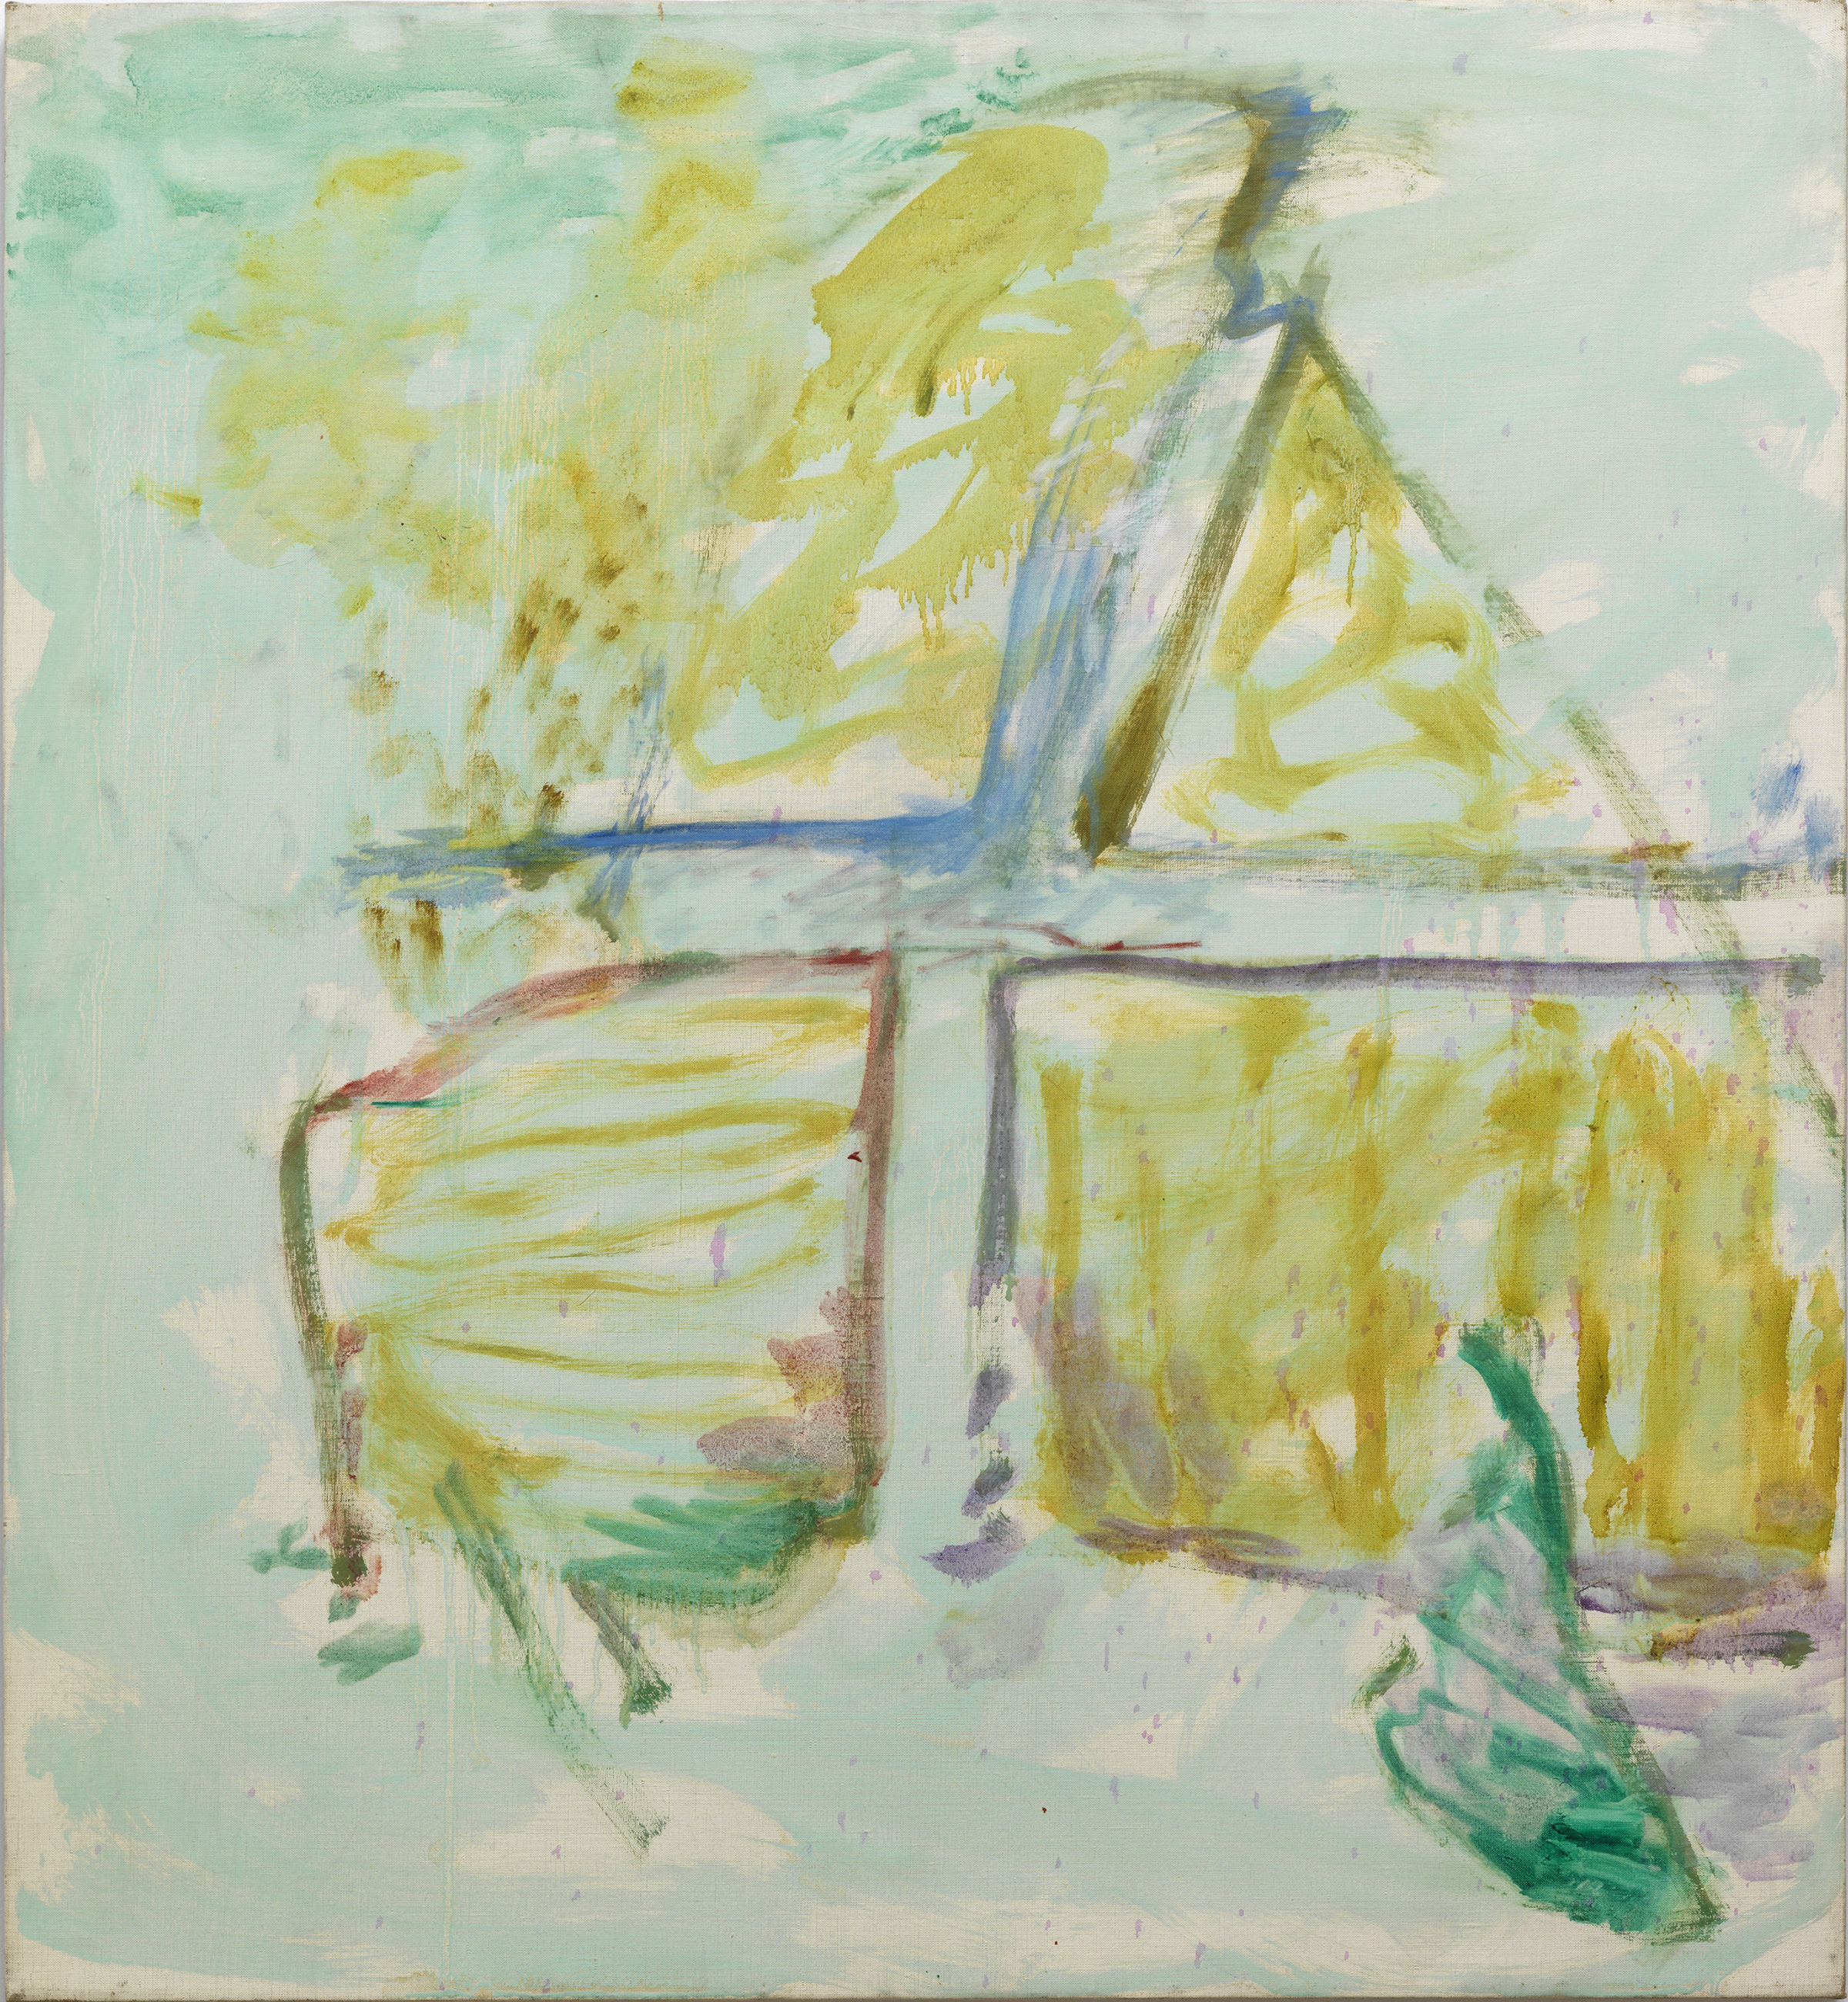 Pat Passlof  Domino , 1961 Oil on linen 28 x 26 inches